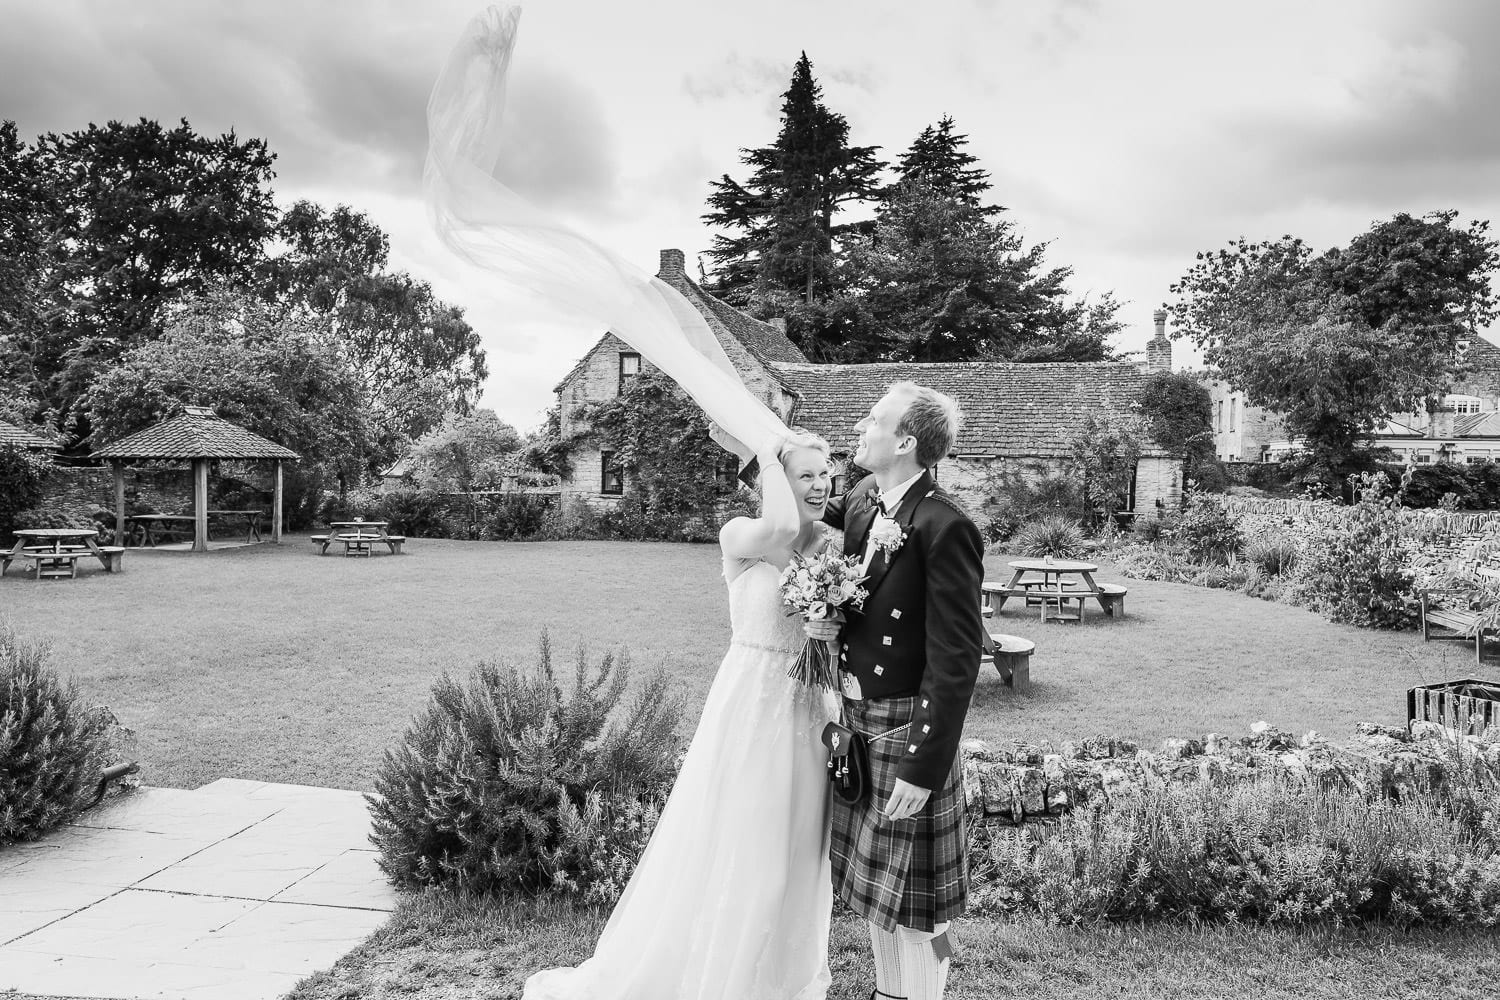 The bride's veil is swept up by the wind